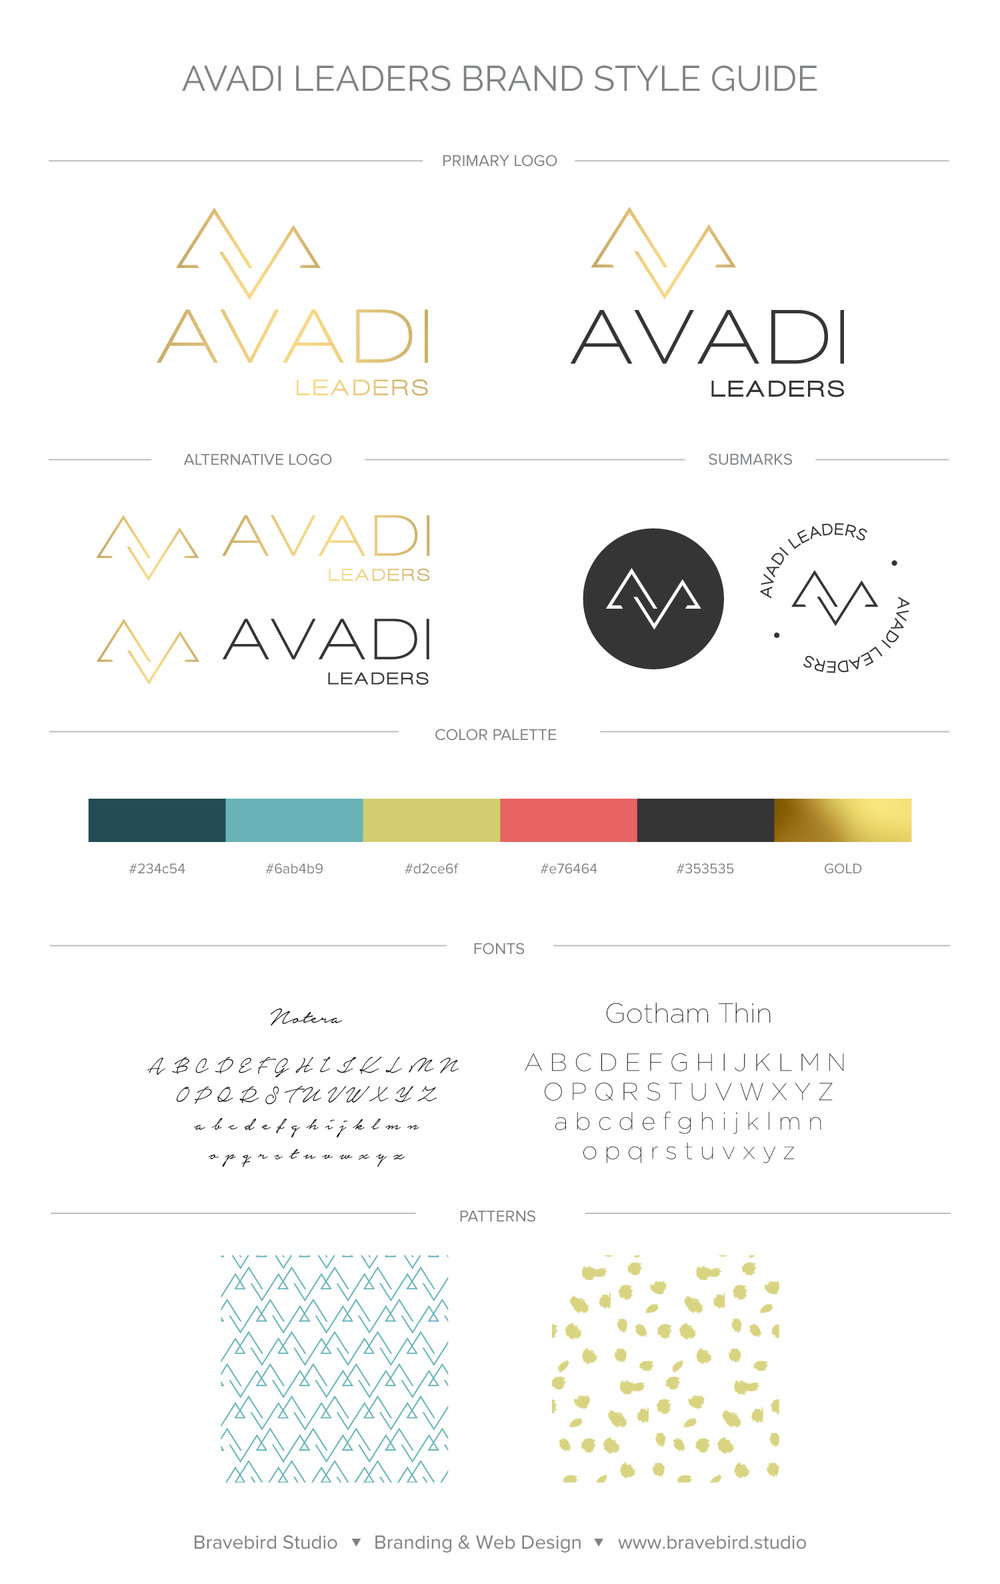 Avadi Leaders | Branding & Web Design | Bravebird Studio